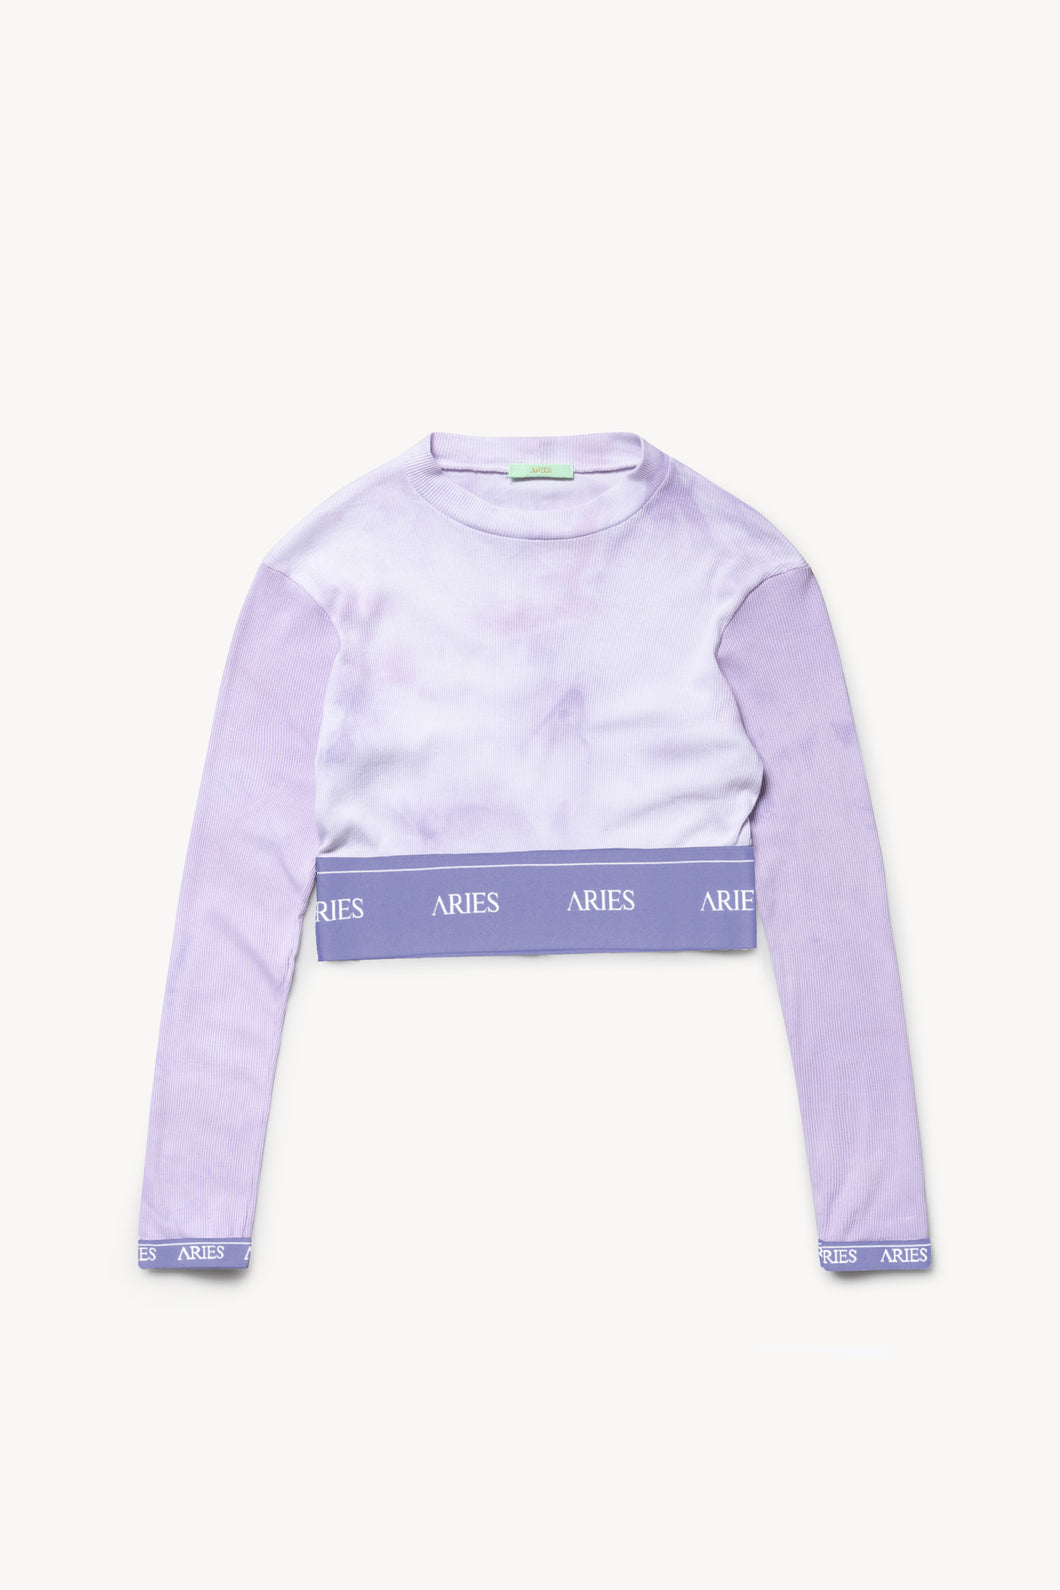 Aries Tie-Dye Rib Crop Top